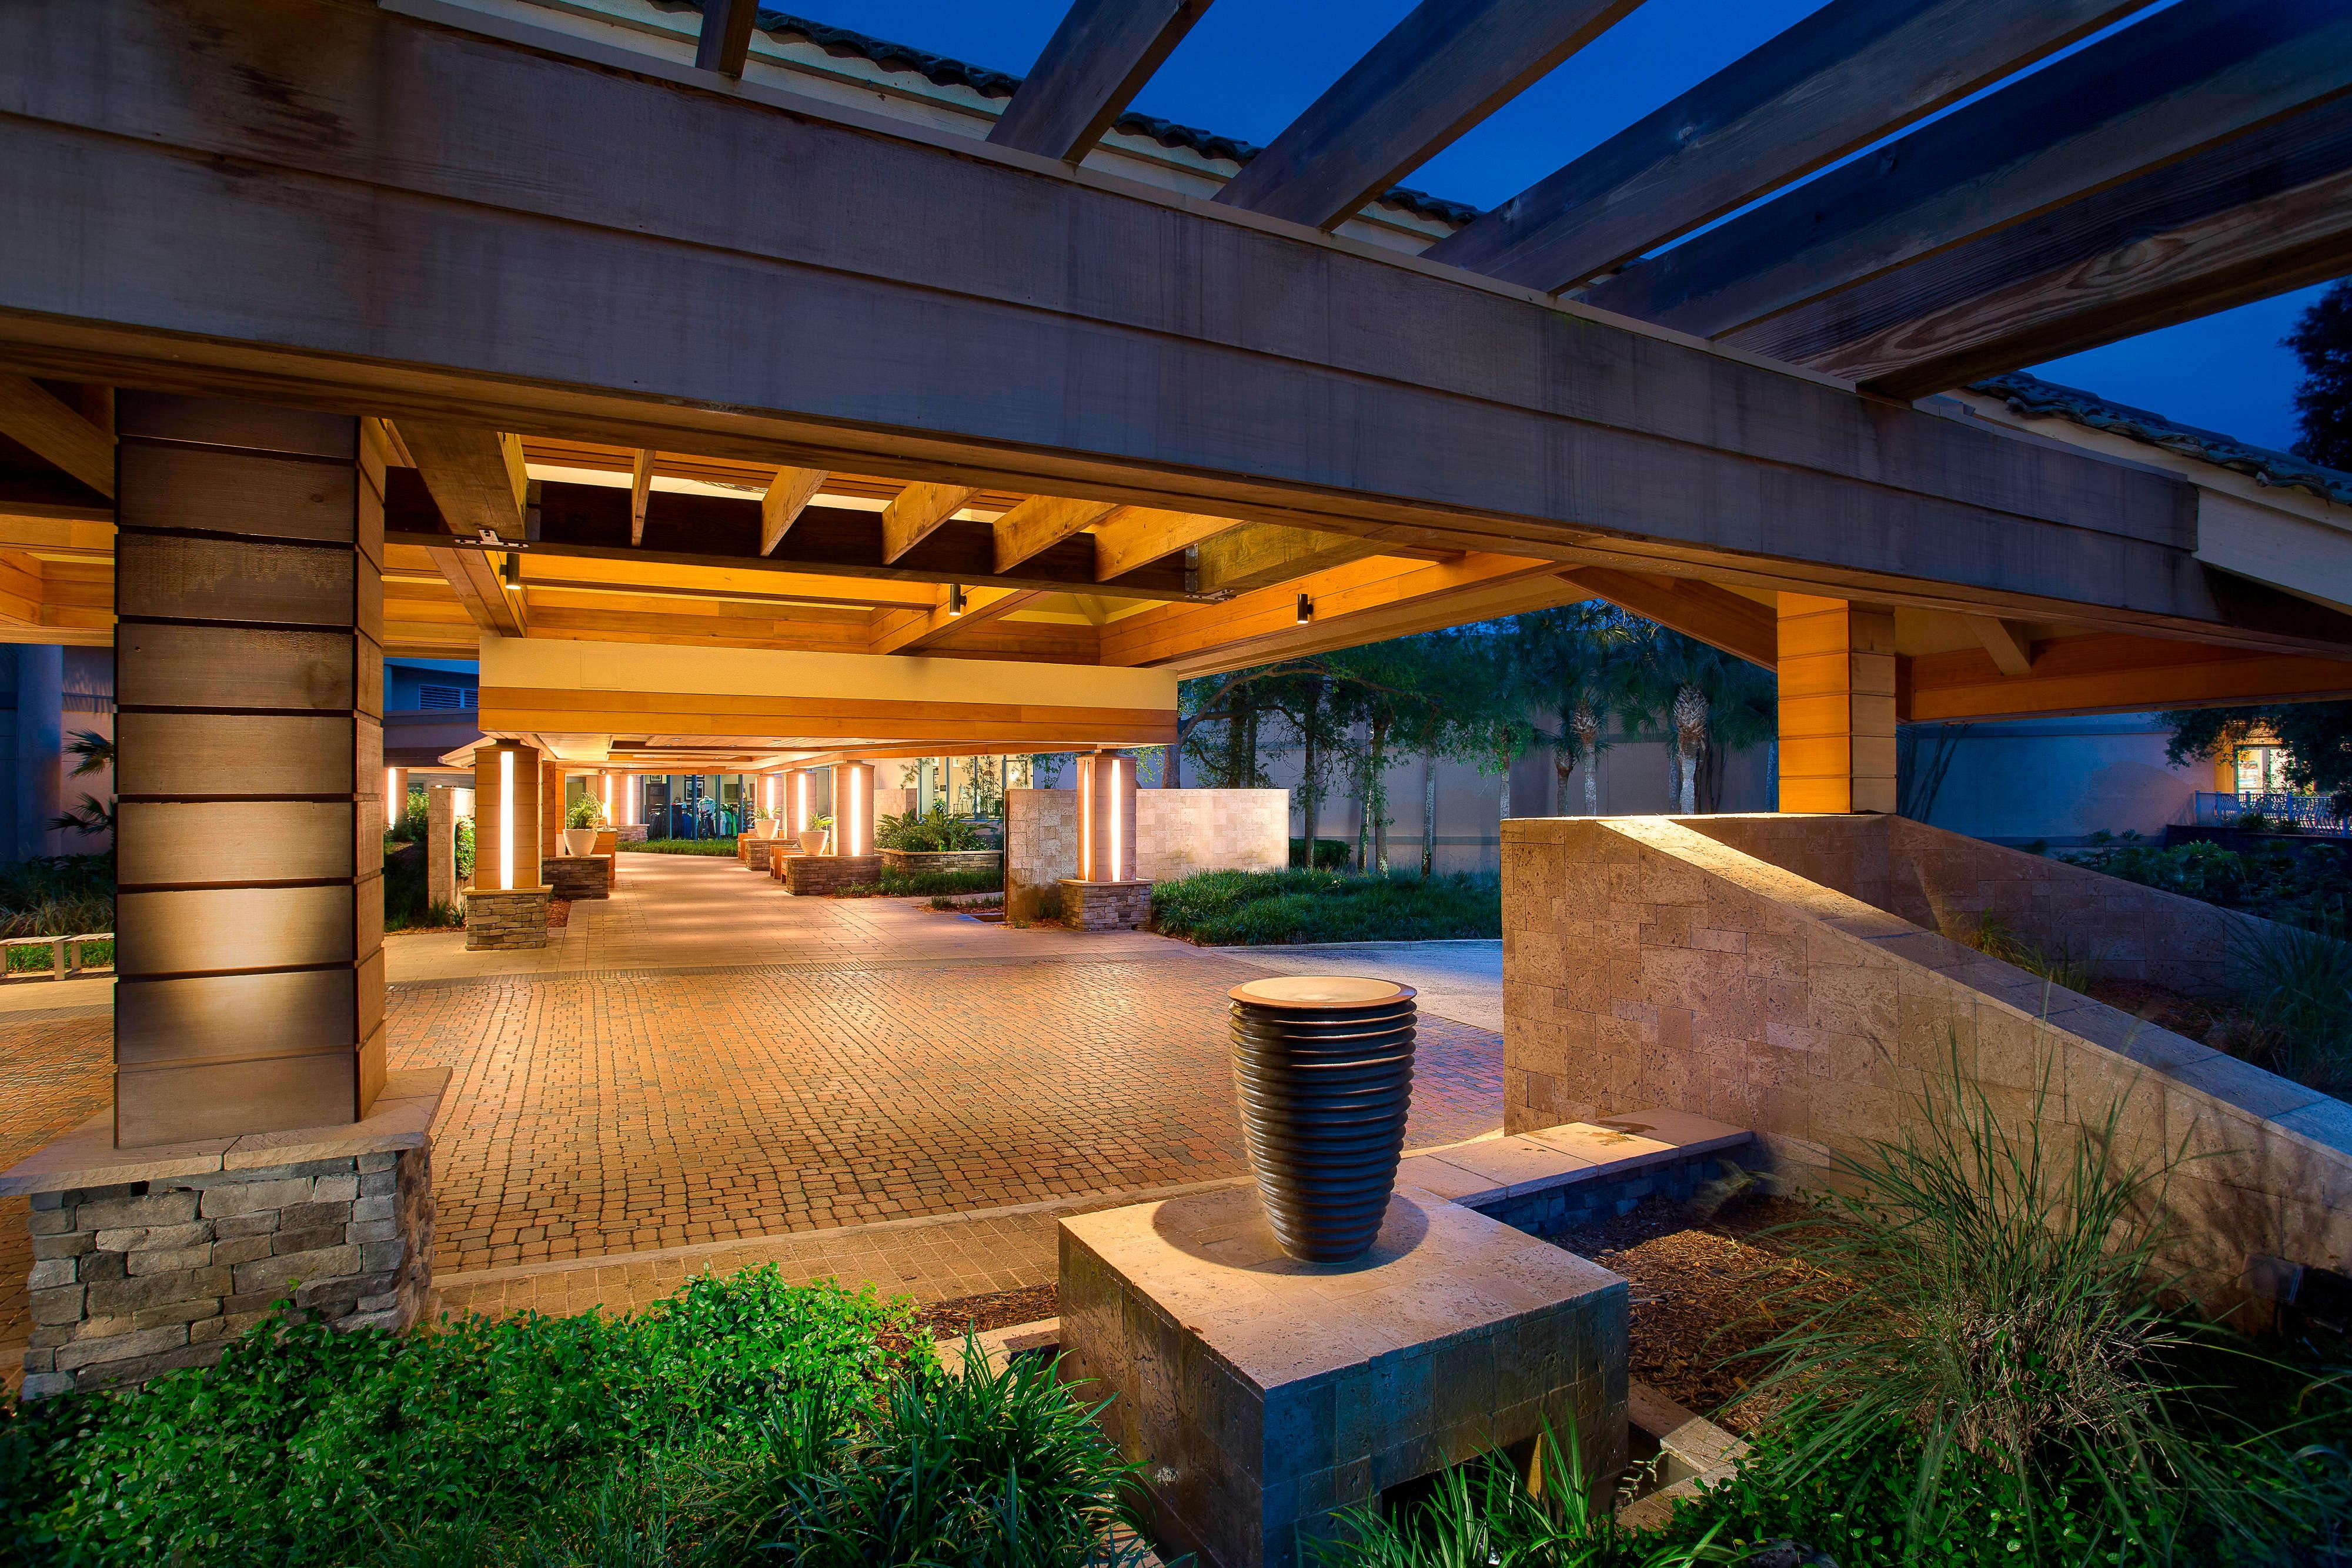 Sawgrass Marriott Resort Entrance